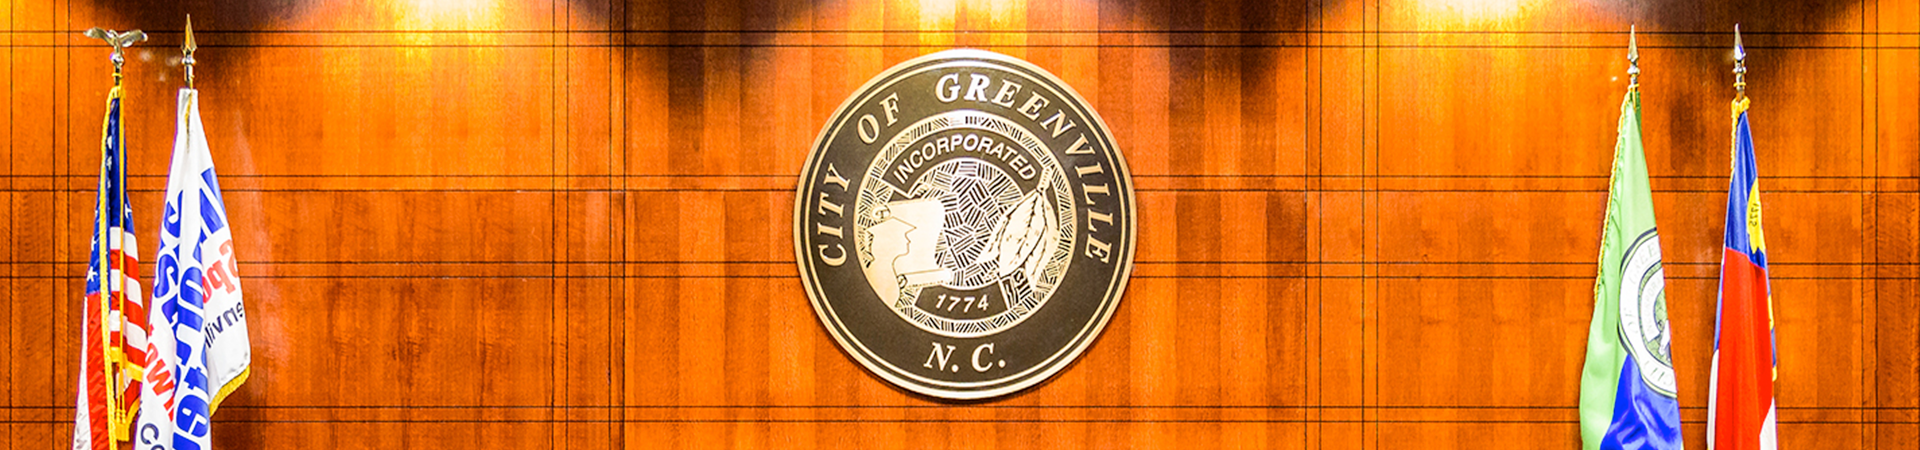 City Seal Interior Banner